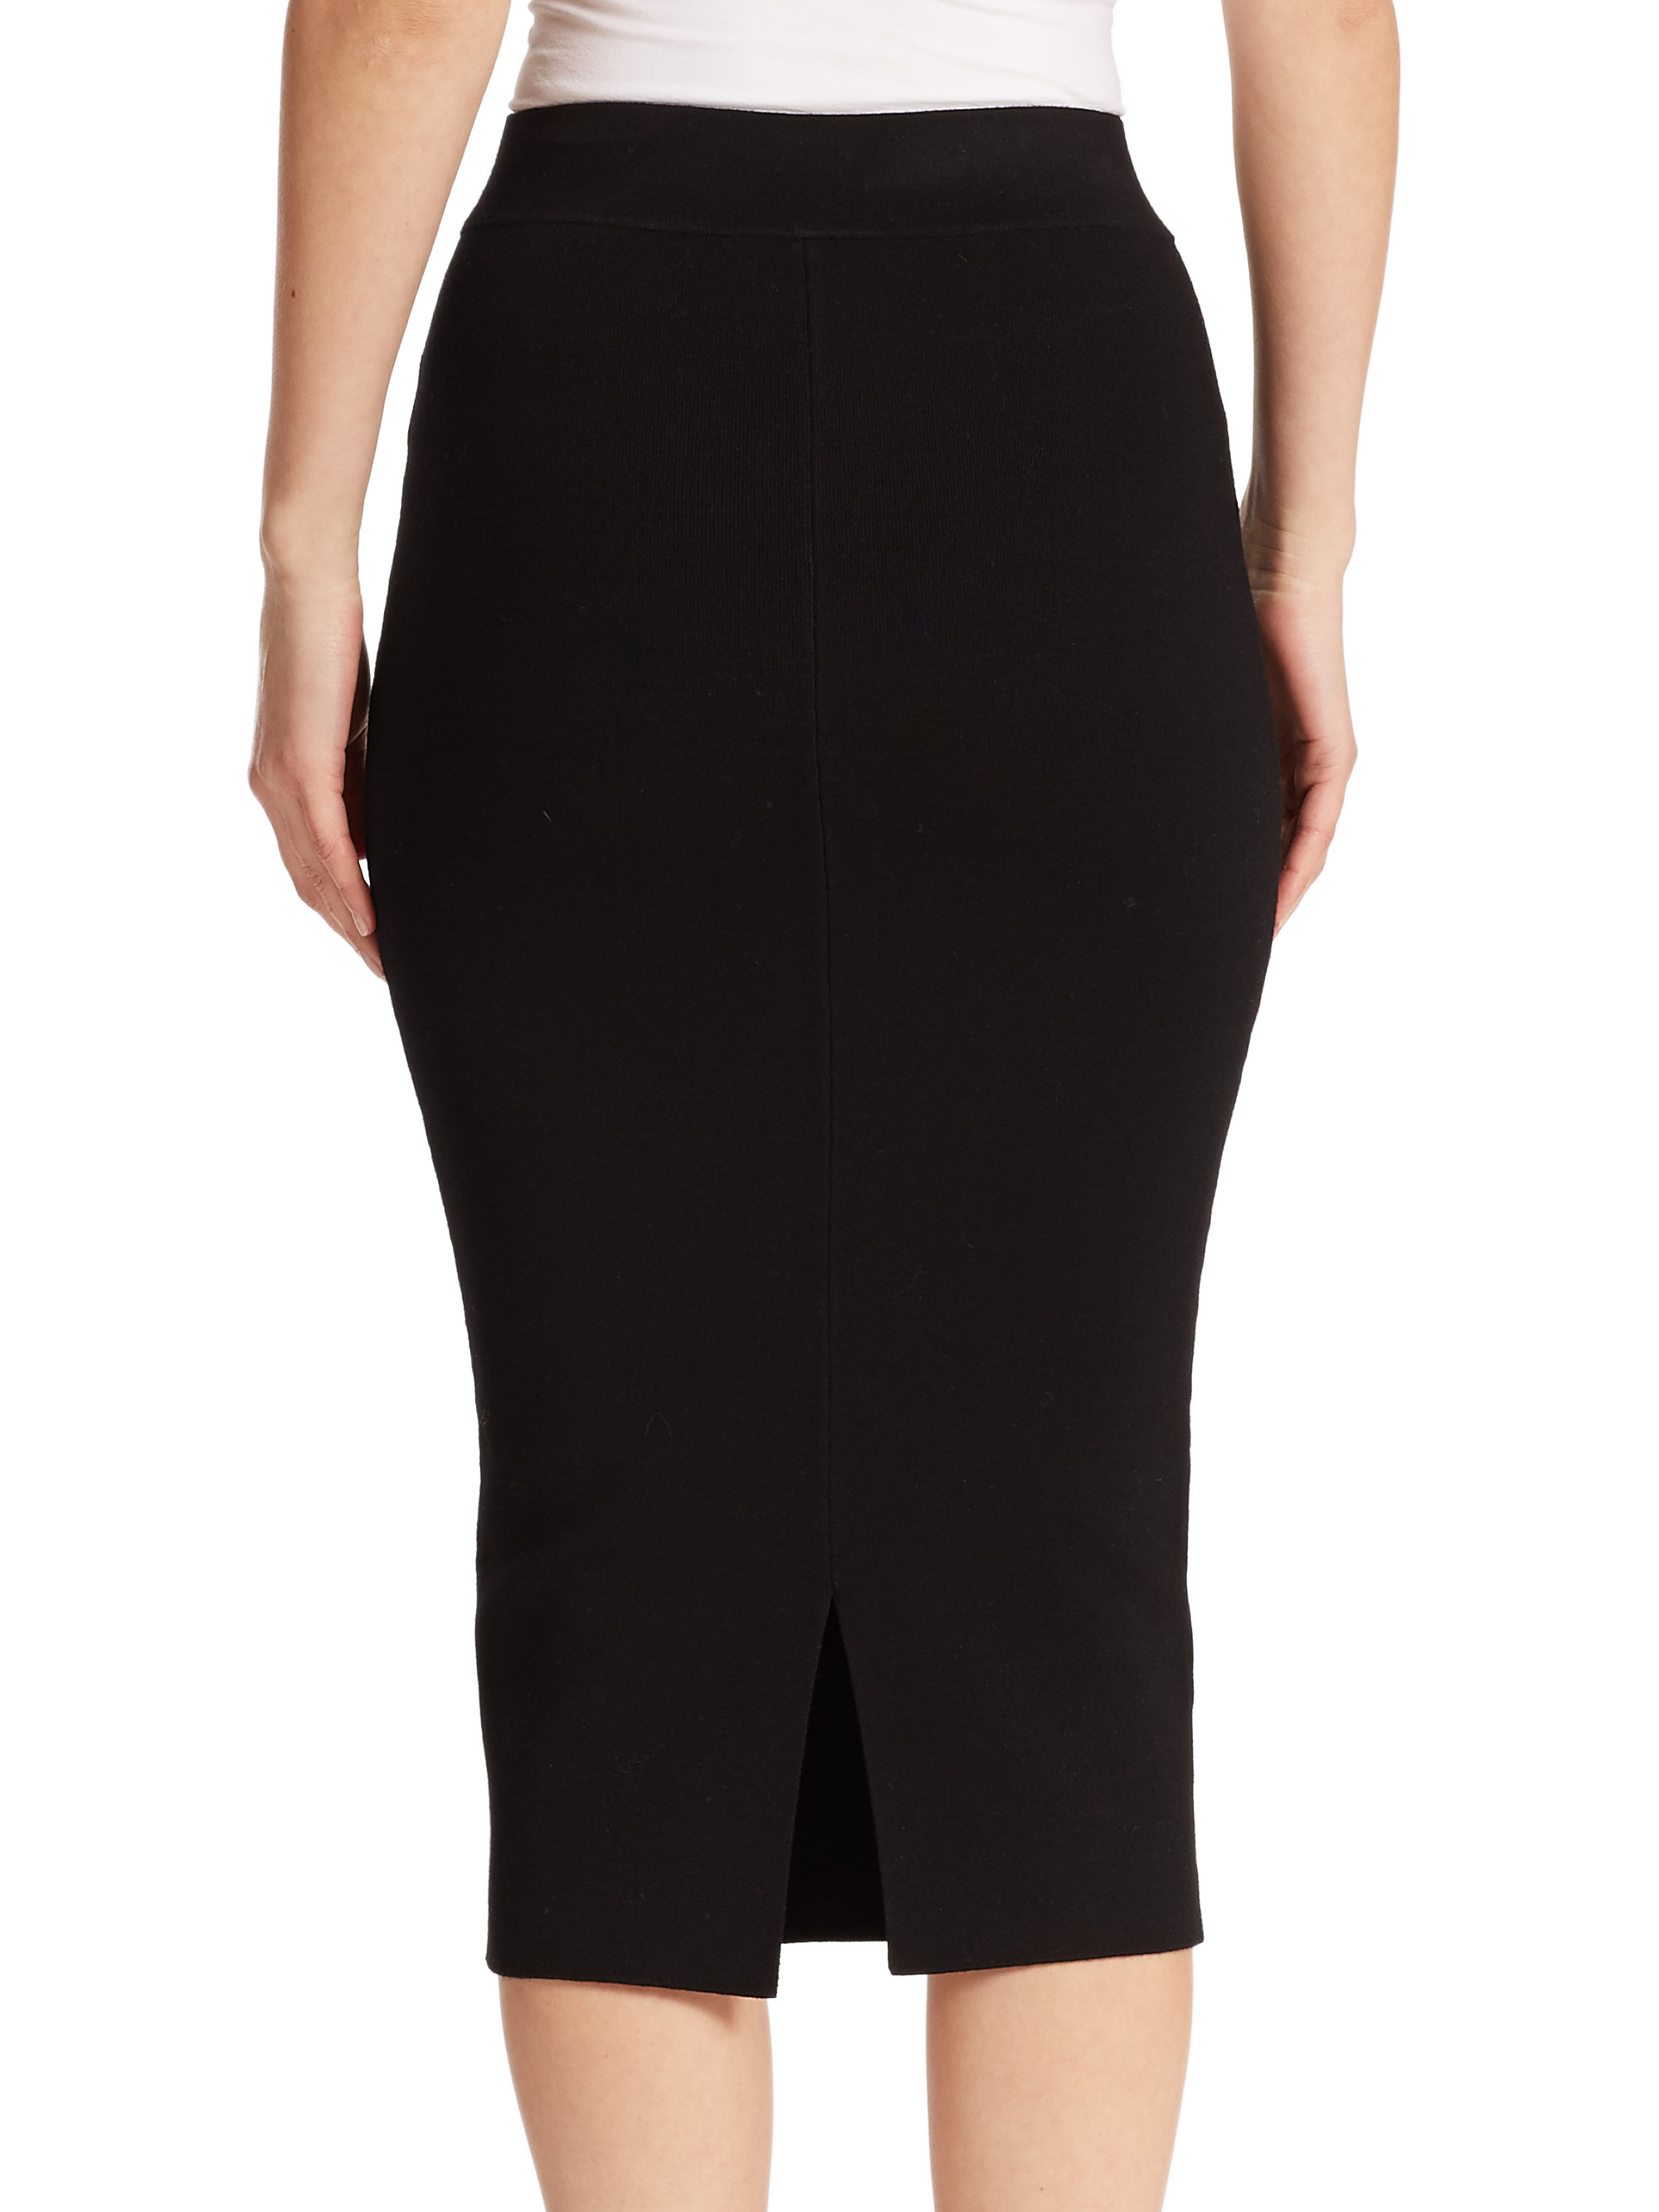 Milly Fitted Pencil Skirt in Black | Lyst